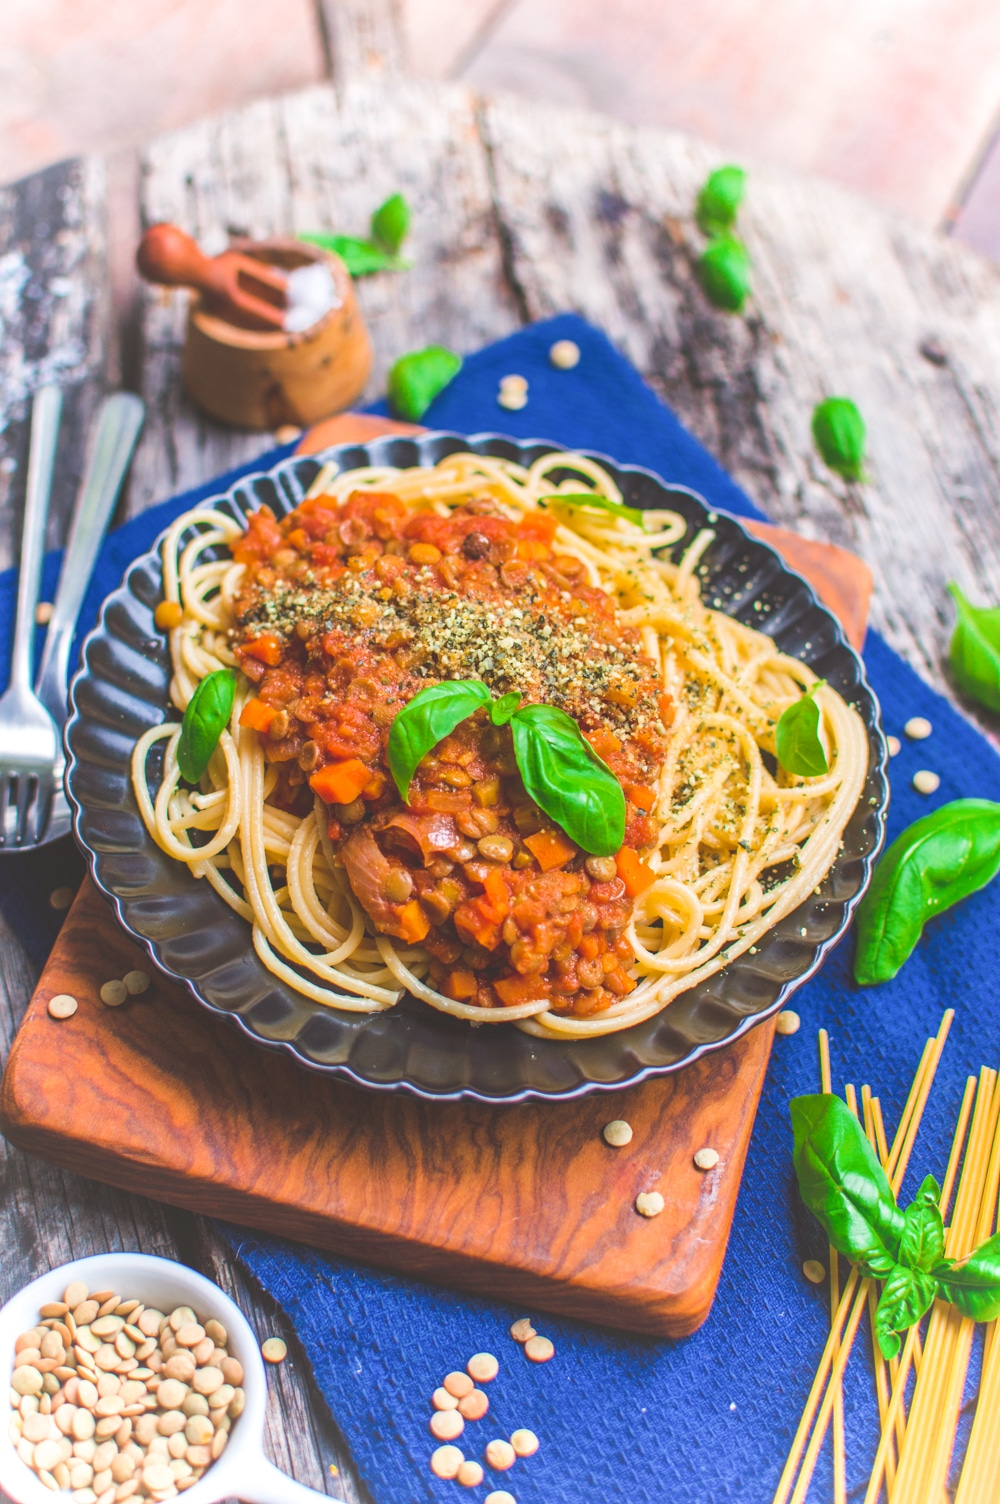 Vegan Lentil Bolognese Pasta Recipe | Protein-Packed Sauce | World of Vegan | #bolognese #vegan #sauce #pasta #protein #italian #dinner #worldofvegan